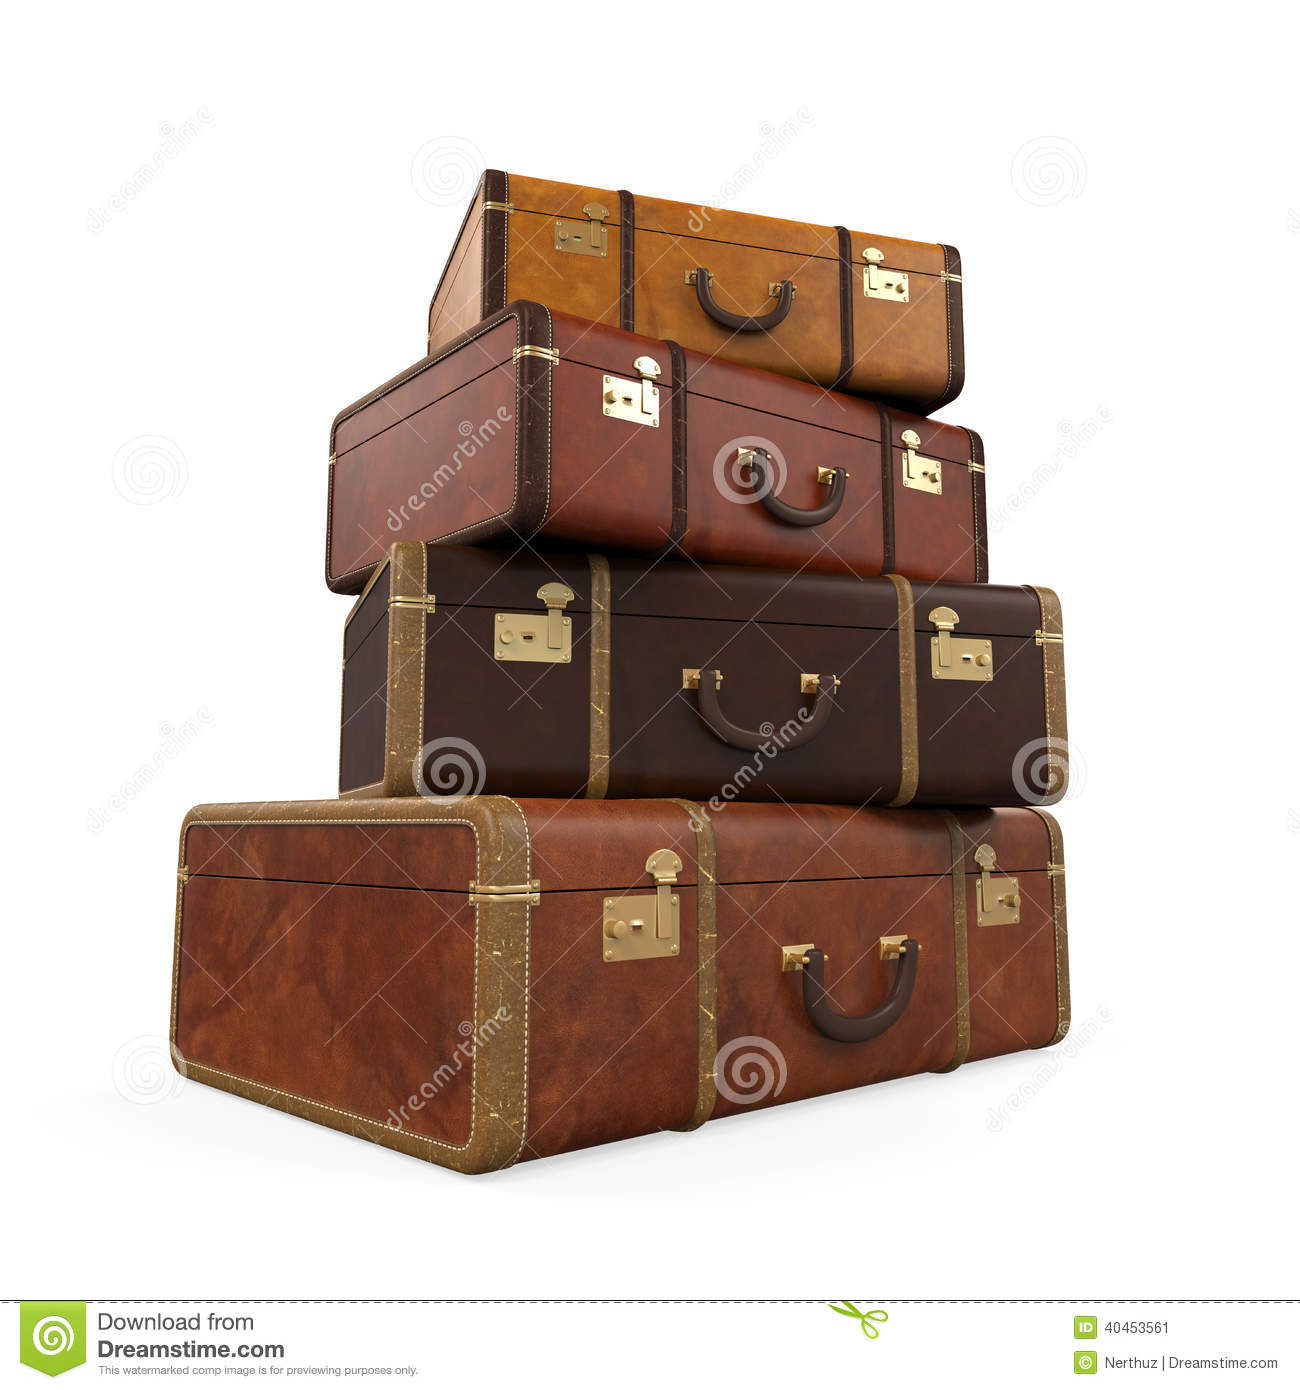 Pile of vintage suitcases stock photo image 40453561 for What to do with vintage suitcases